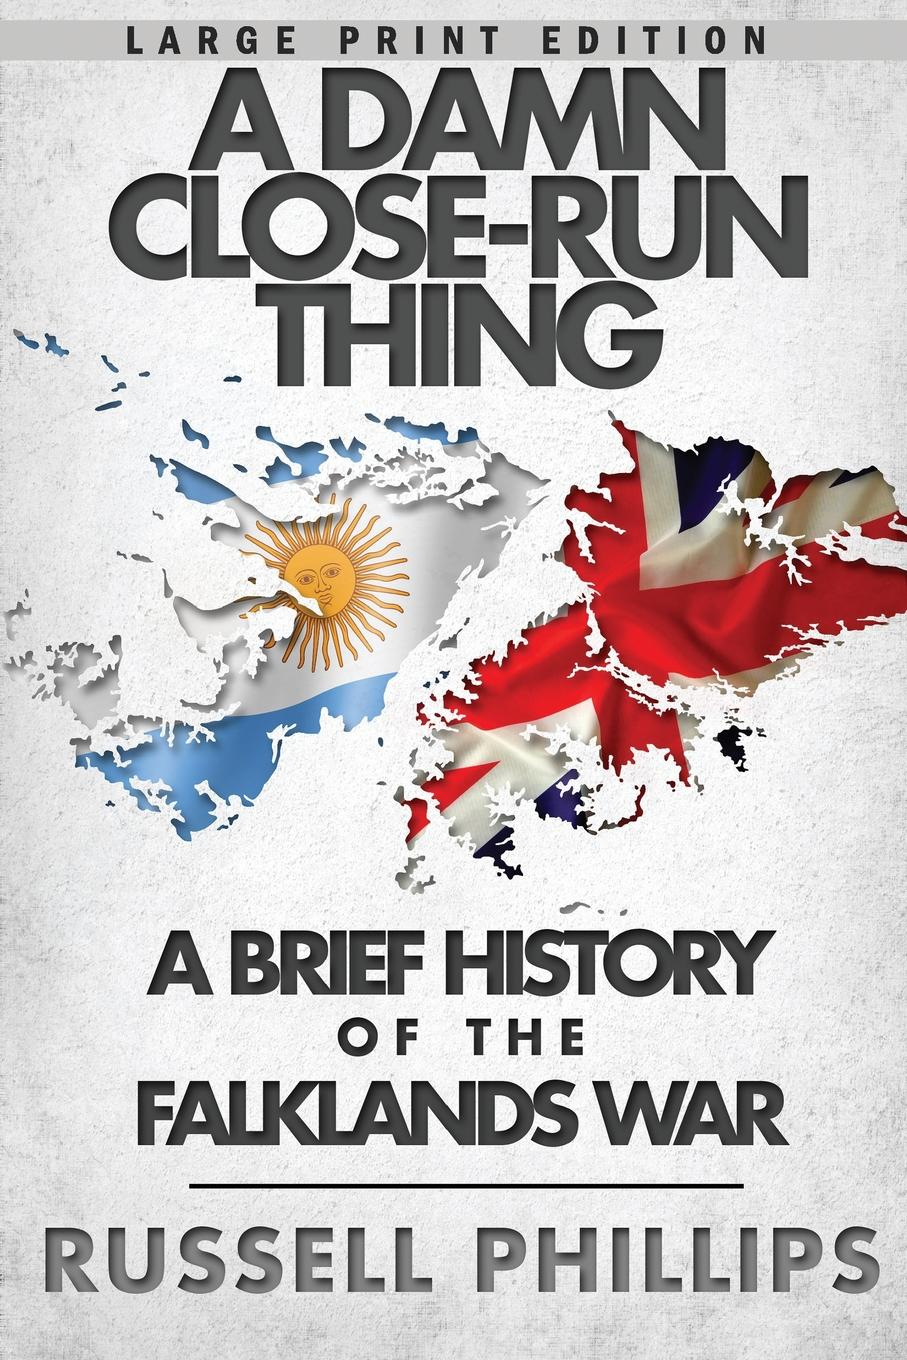 Russell Phillips A Damn Close-Run Thing (Large Print). A Brief History Of The Falklands Conflict the falklands war